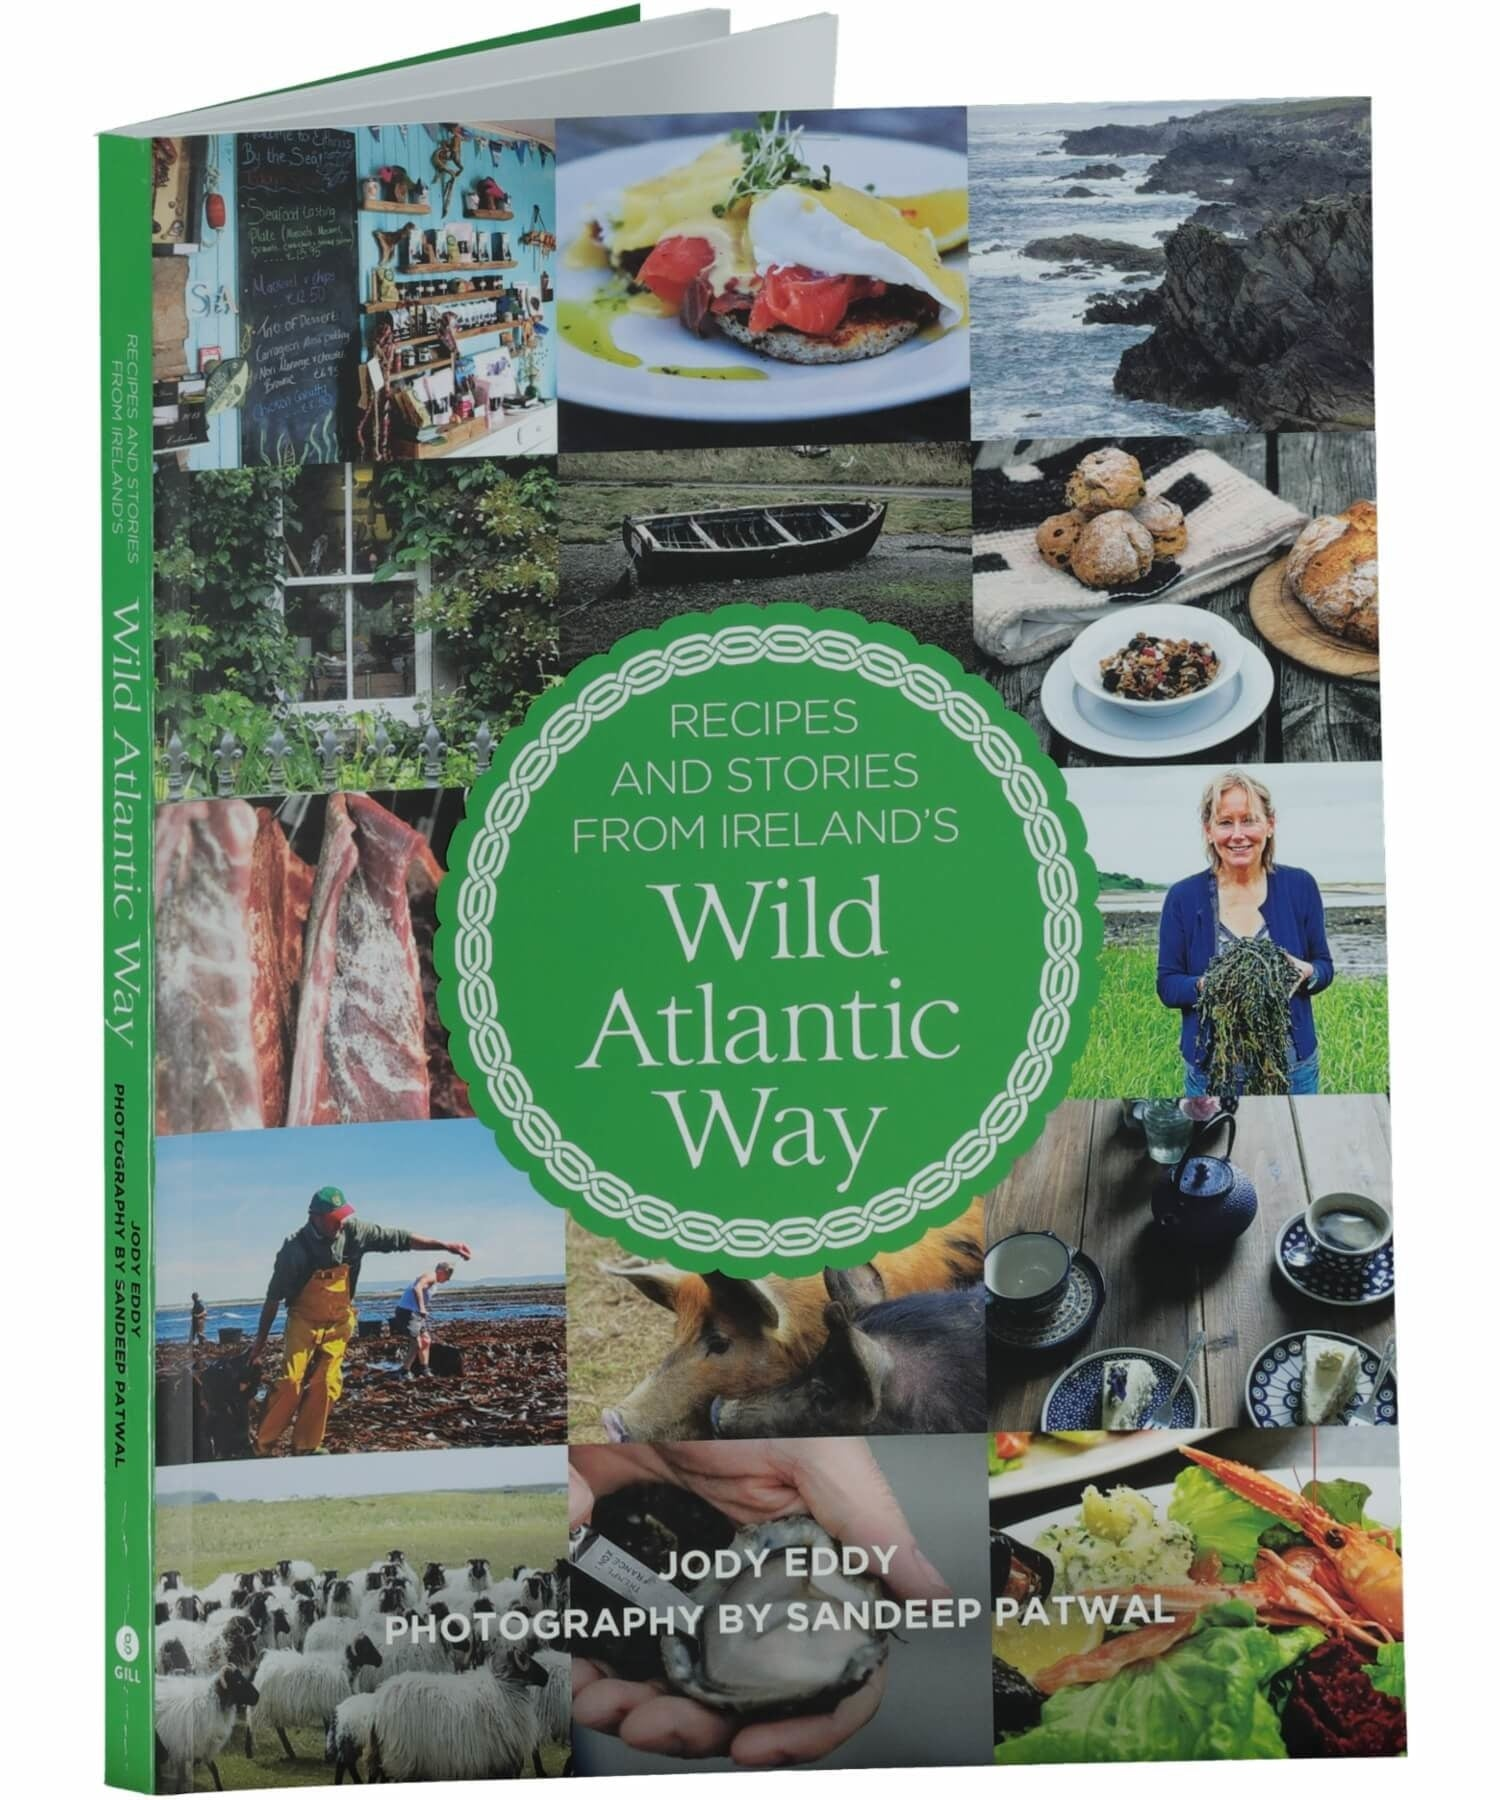 Recipes and Stories from Ireland's Wild Atlantic Way - [Gill & MacMillan] - Books & Stationery - Irish Gifts